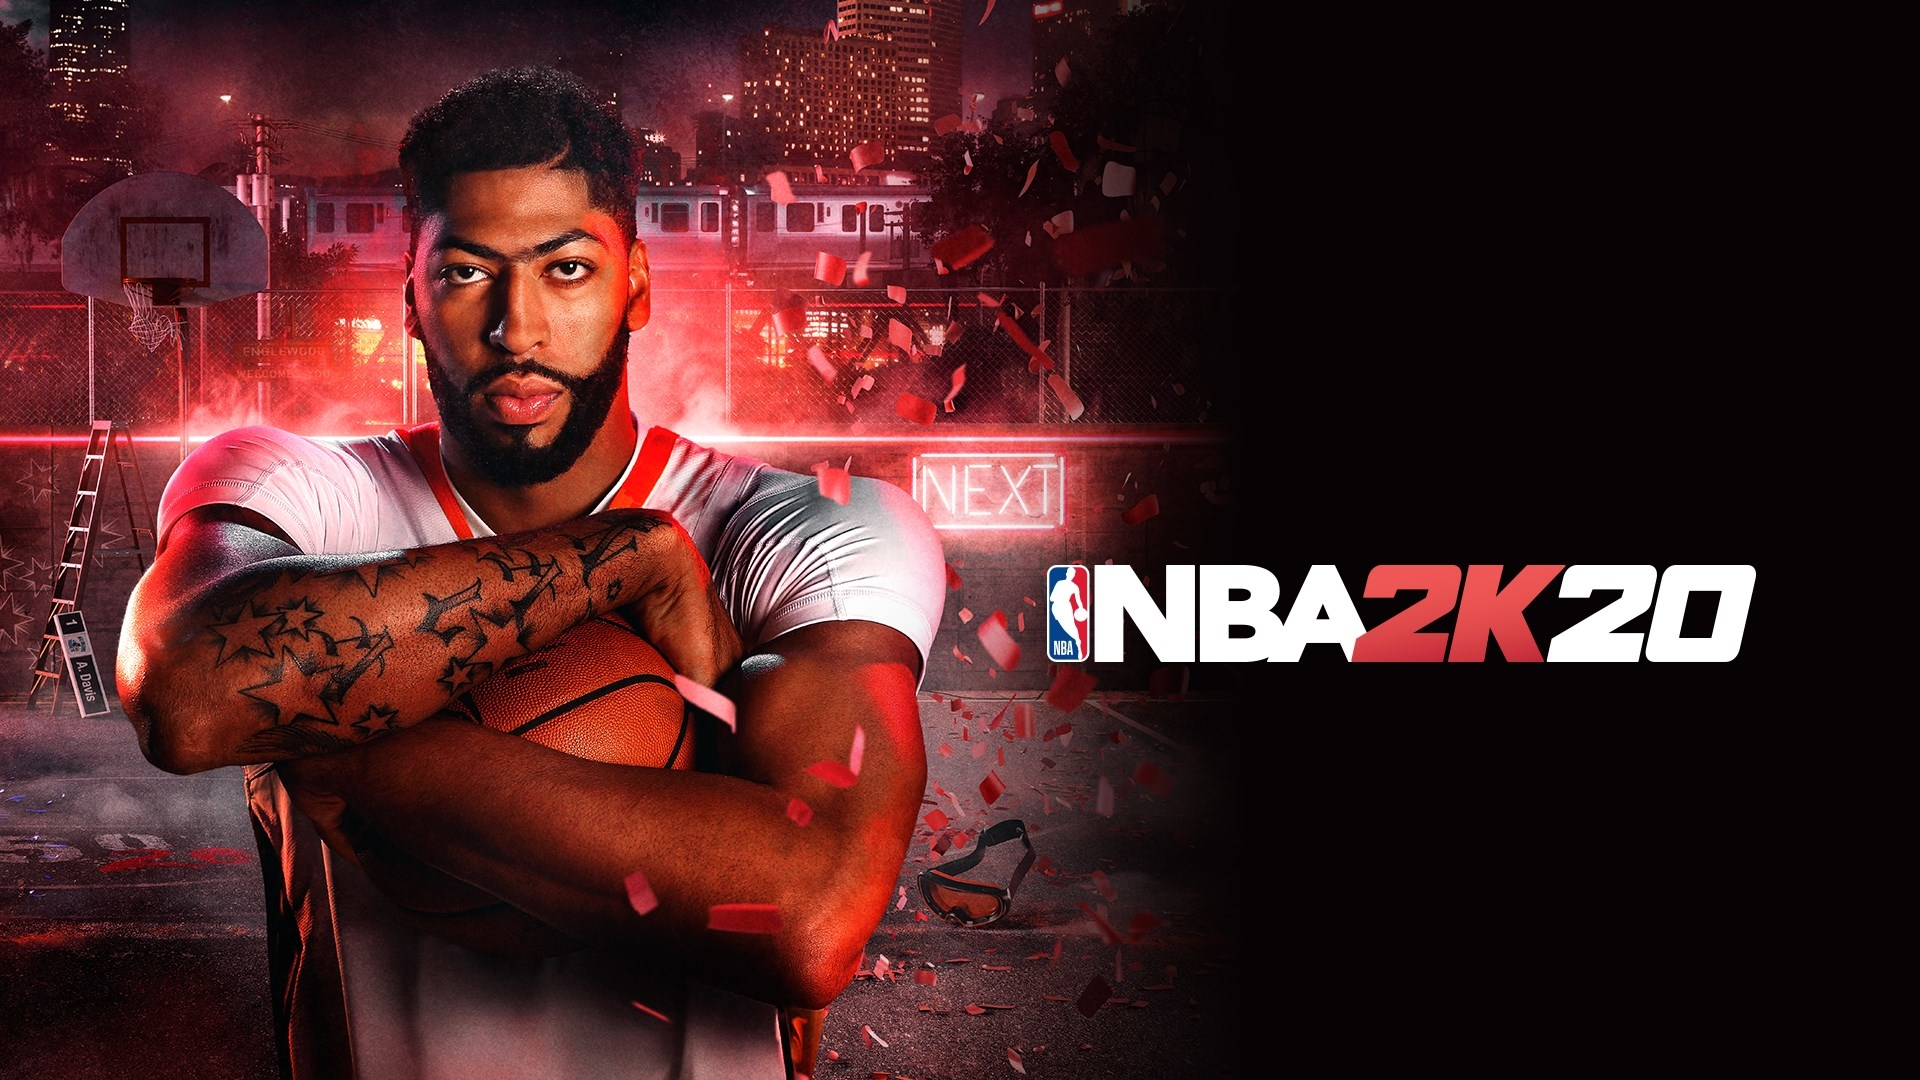 Nba 2k20 Cover Wallpaper Hd Games 4k Wallpapers Images Photos And Background